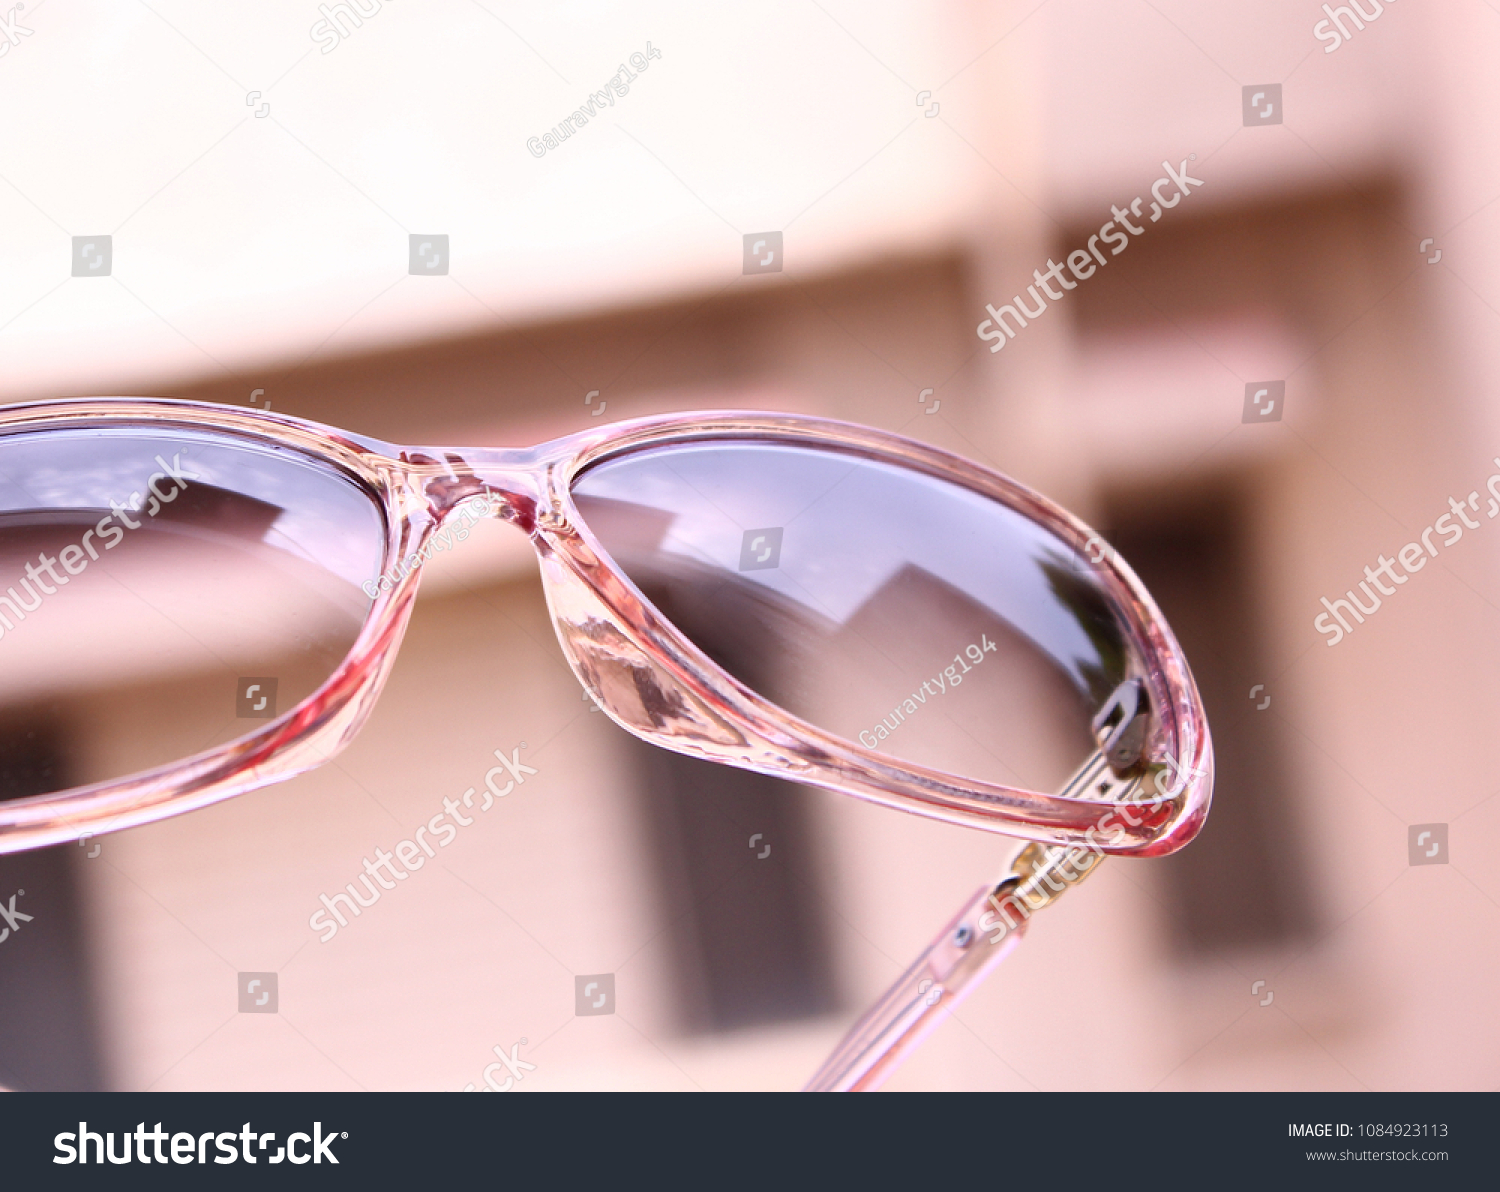 6c693ce9f0 The lenses of polarized sunglasses reduce glare reflected at some angles  off shiny non-metallic